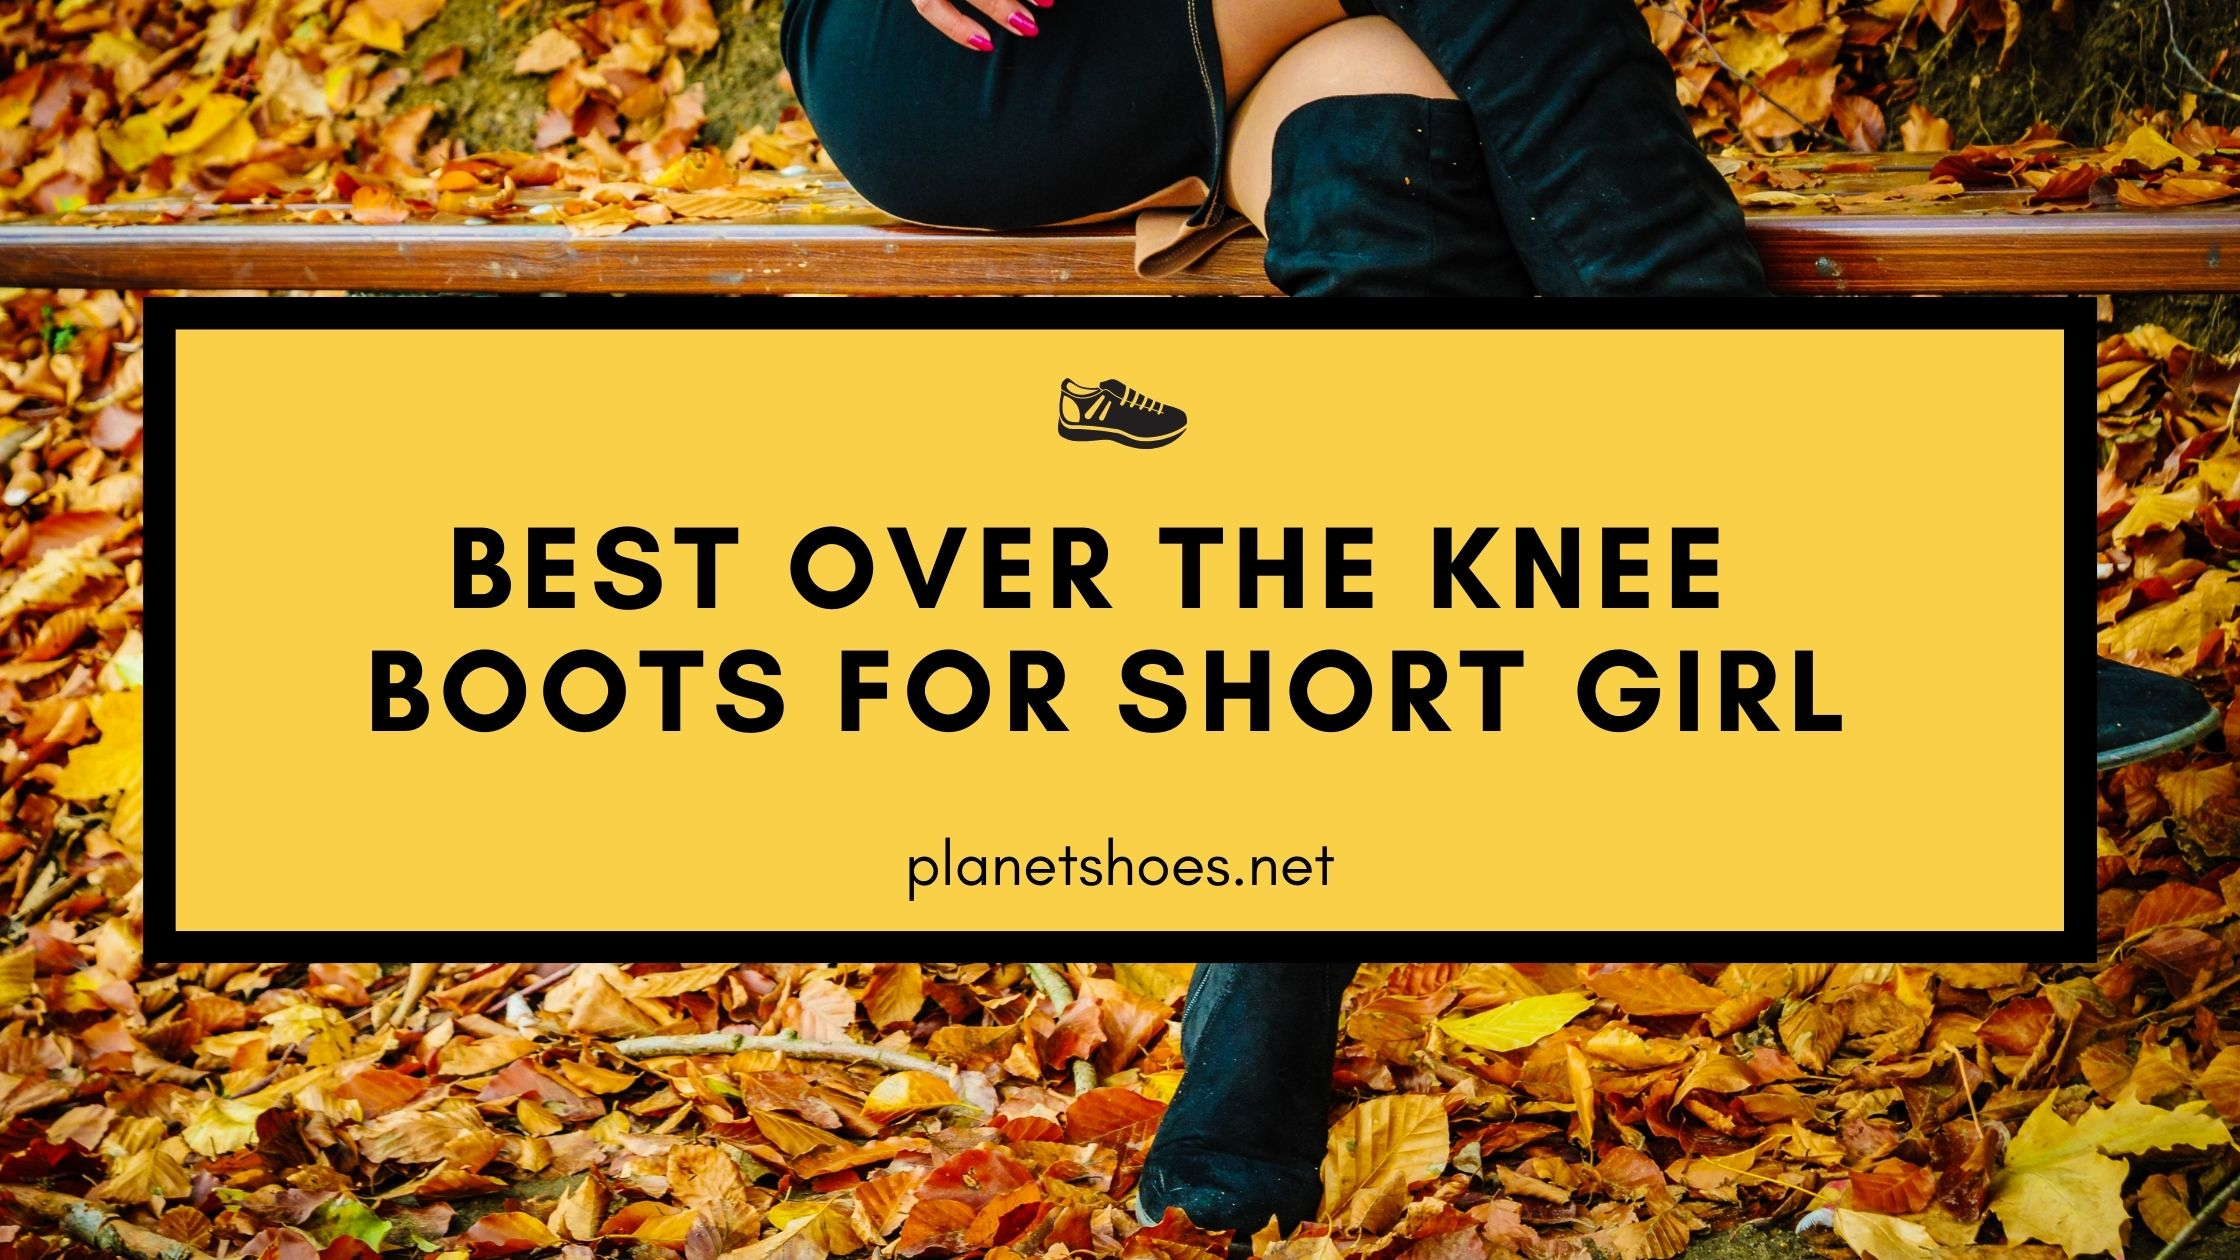 PS-best-over-the-knee-boots-for-short-girl